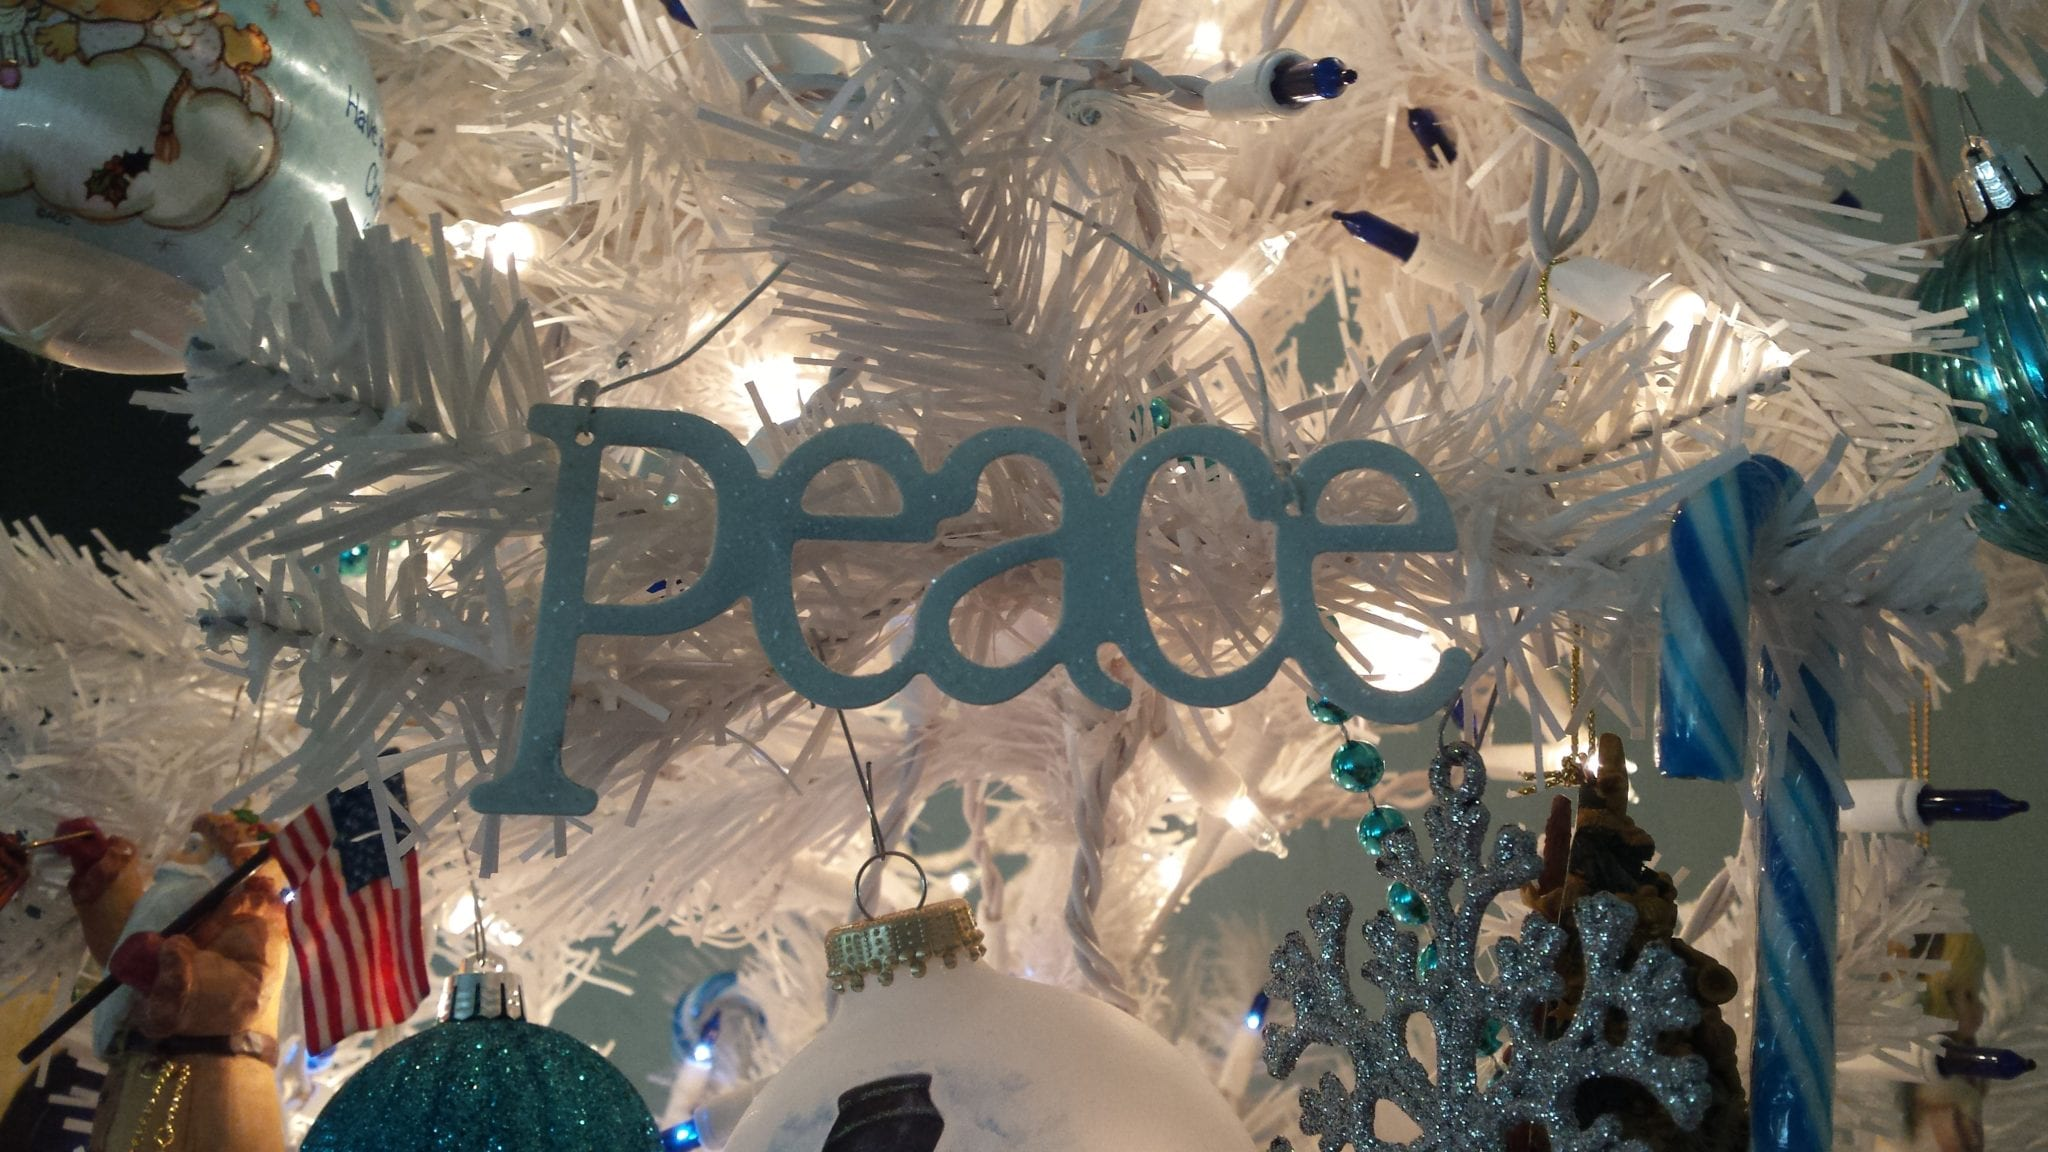 My word for the year was PEACE. Choosing your word for 2015, why and how. tabithadumas.com